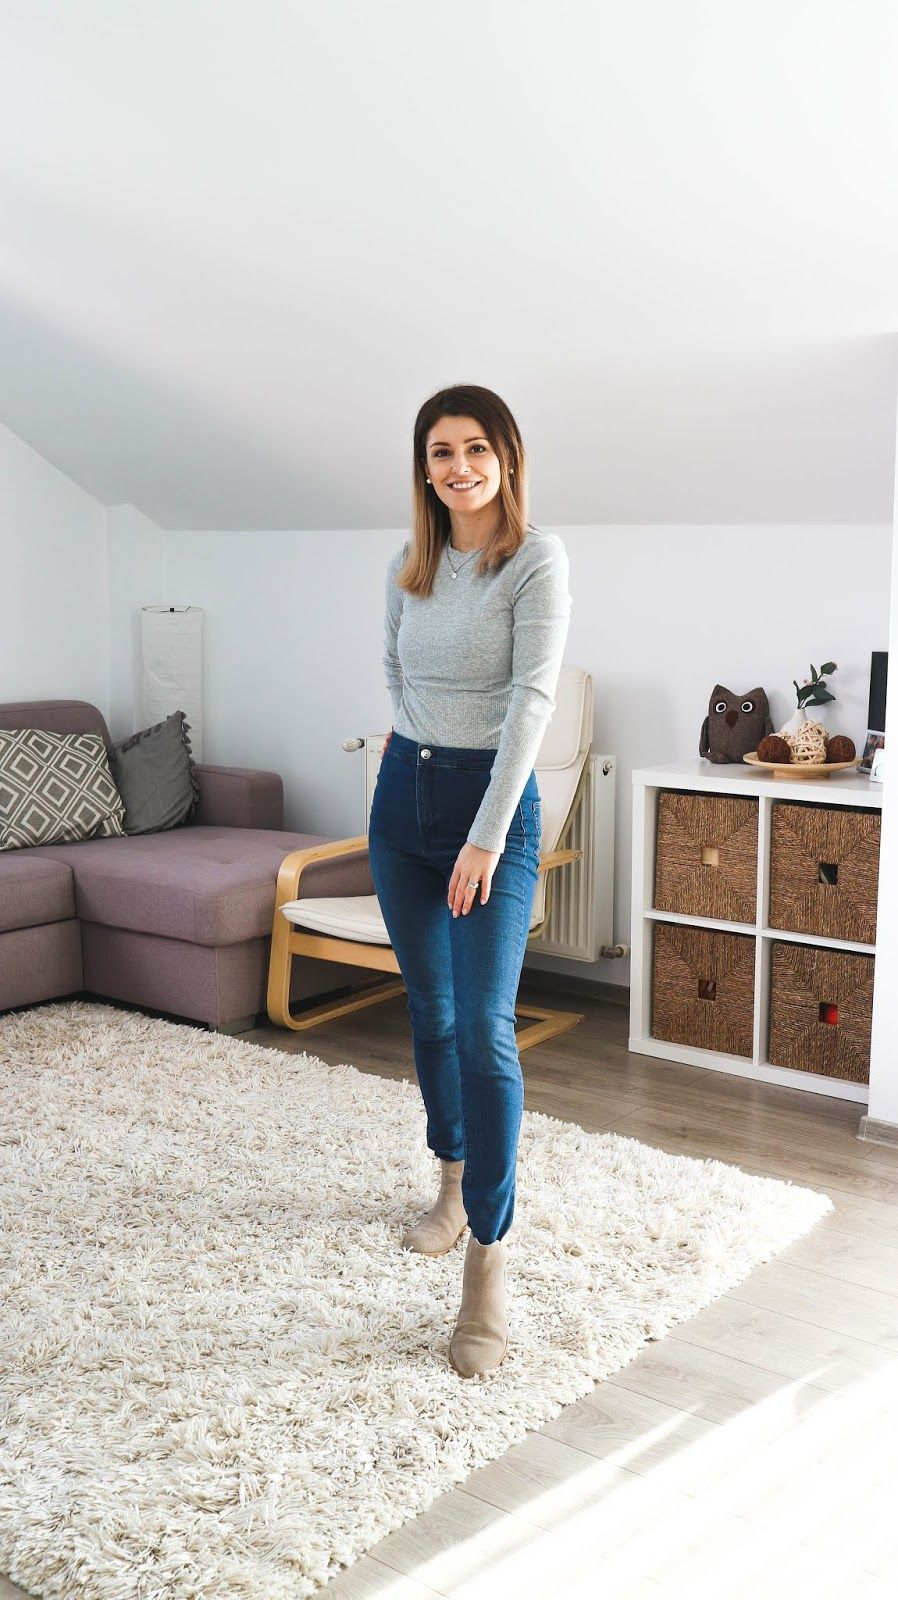 Ribbed Grey Top, High Rise Skinny Jeans, Beige Ankle Boots | Simple Mom Outfits #momstyle #momoutfit #momfashion #outfit #springstyle #skinnyjeansandankleboots